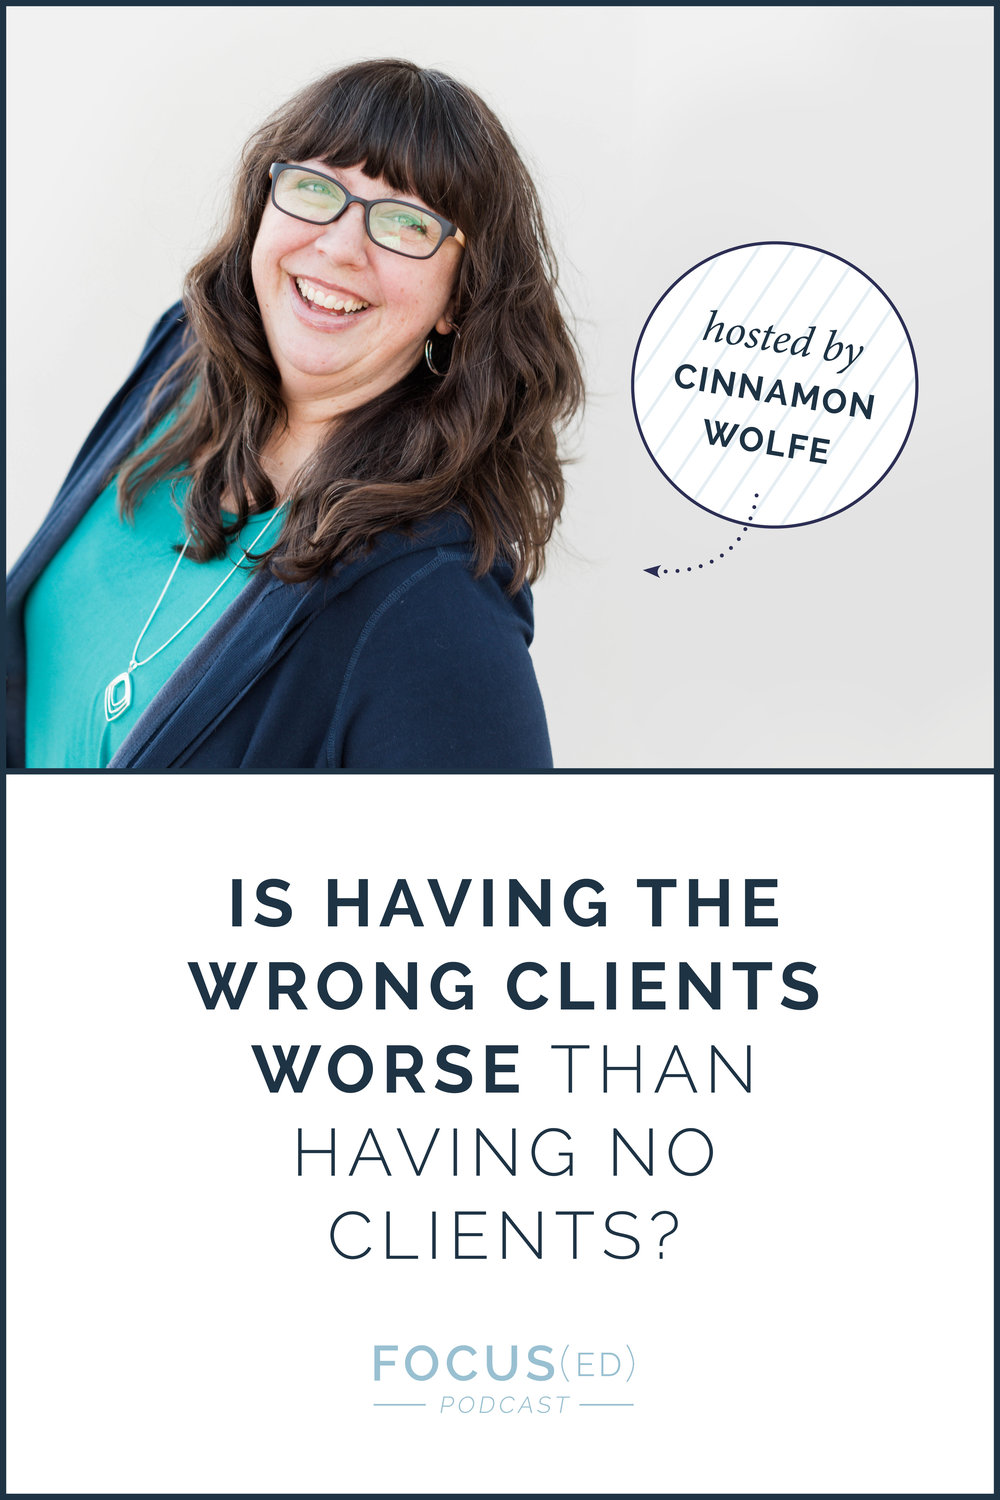 Which is worse? | cinnamonwolfe.co